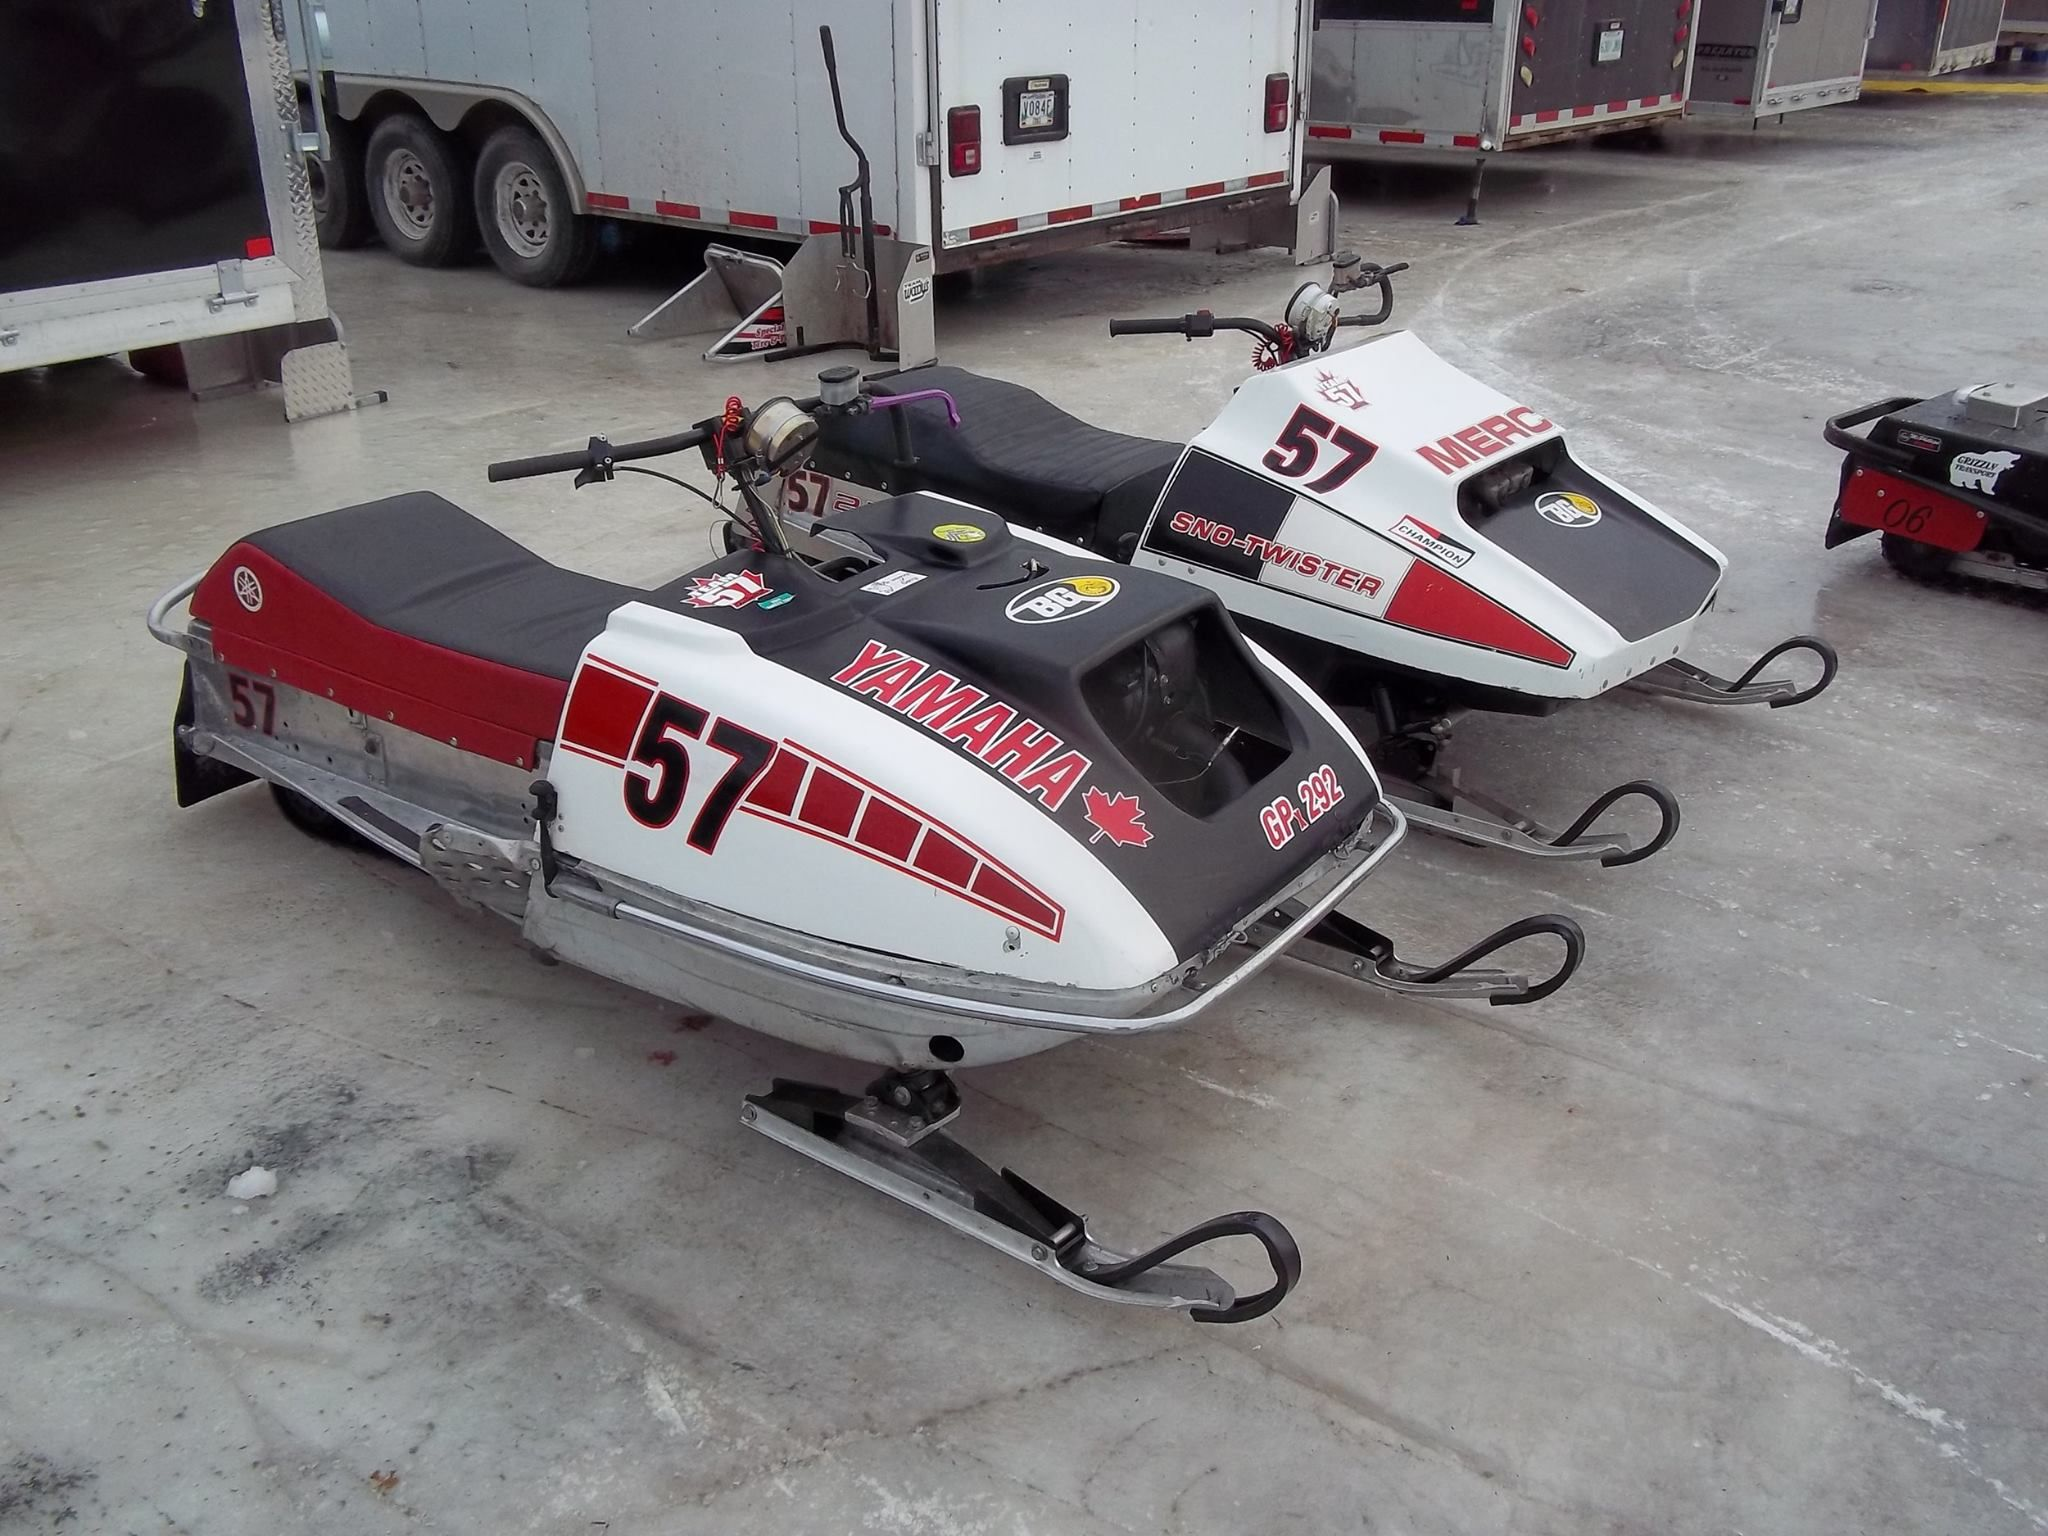 Pin By Rich On Yamaha Vintage Sled Vintage Racing Snowmobile